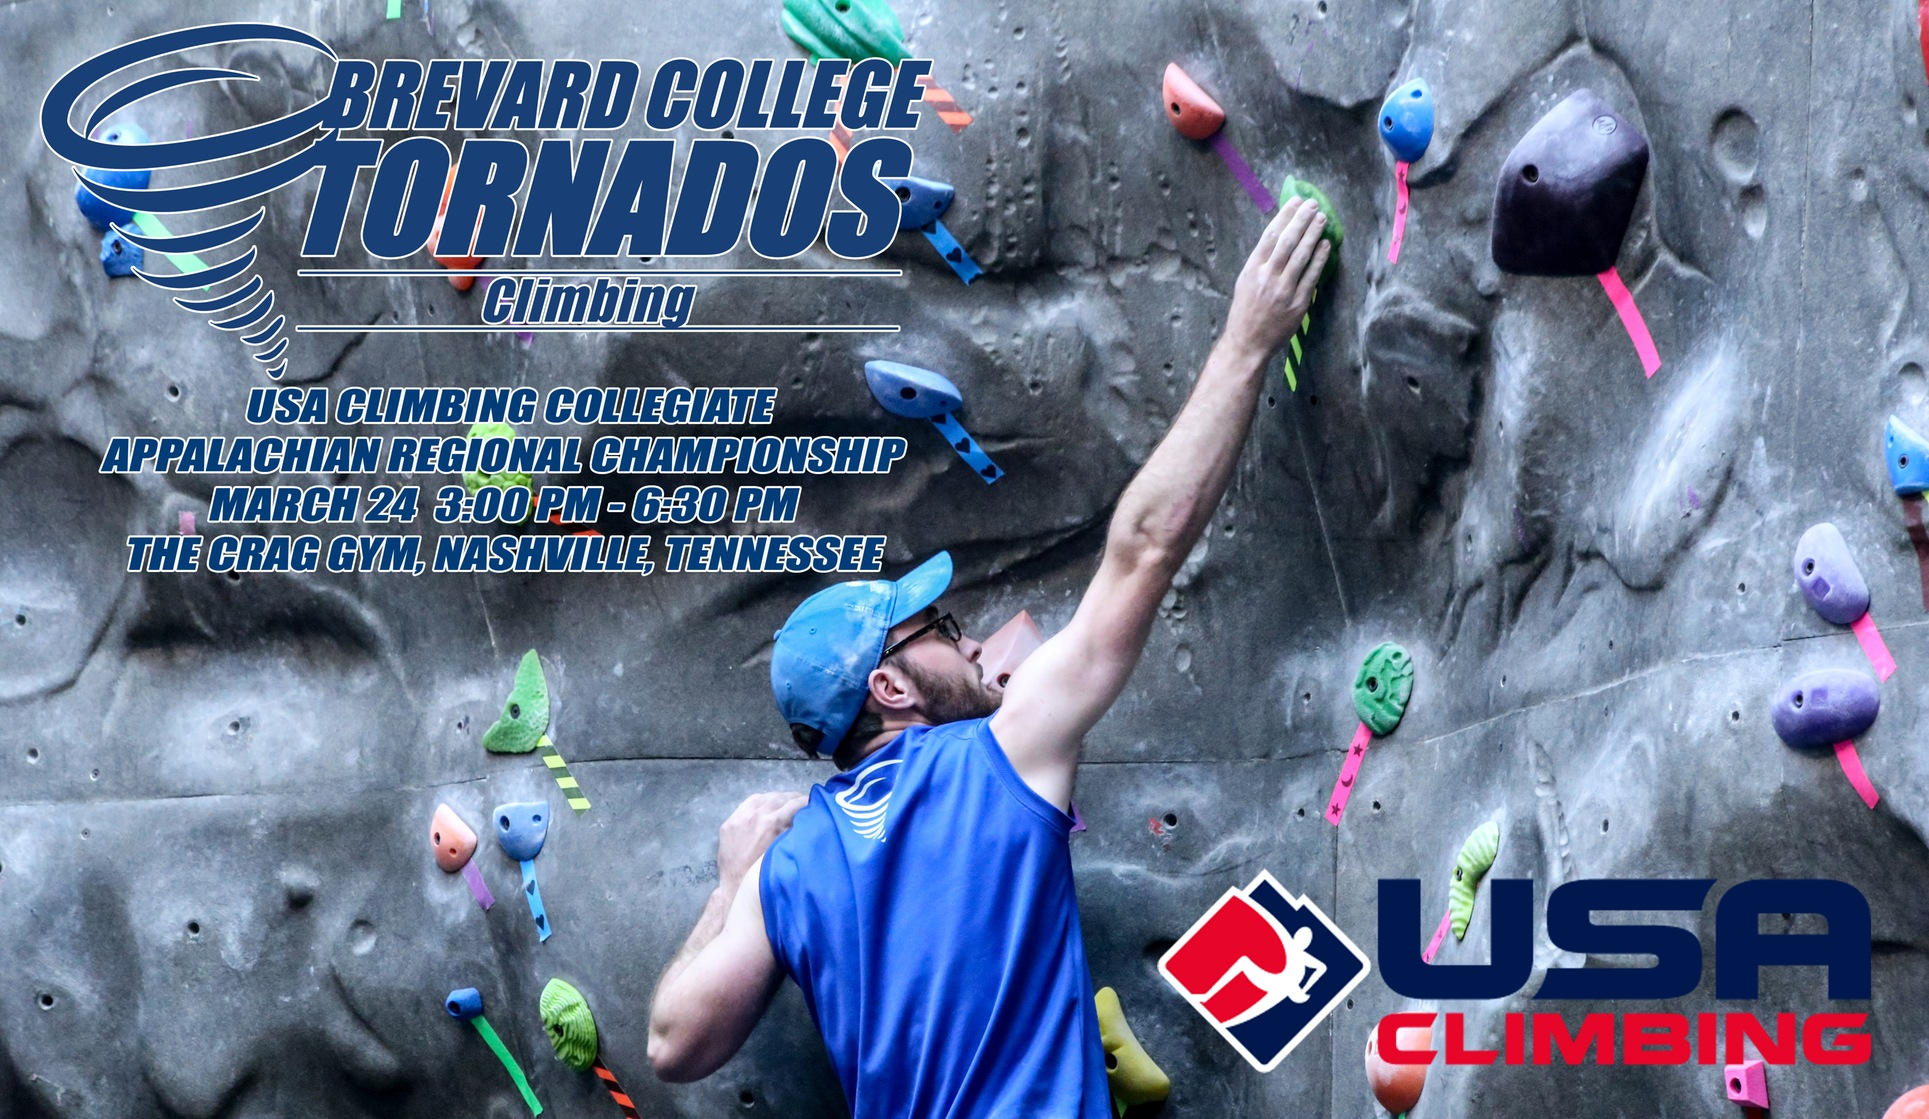 Rock Climbing Heads to Nashville for USAC Regional Championship